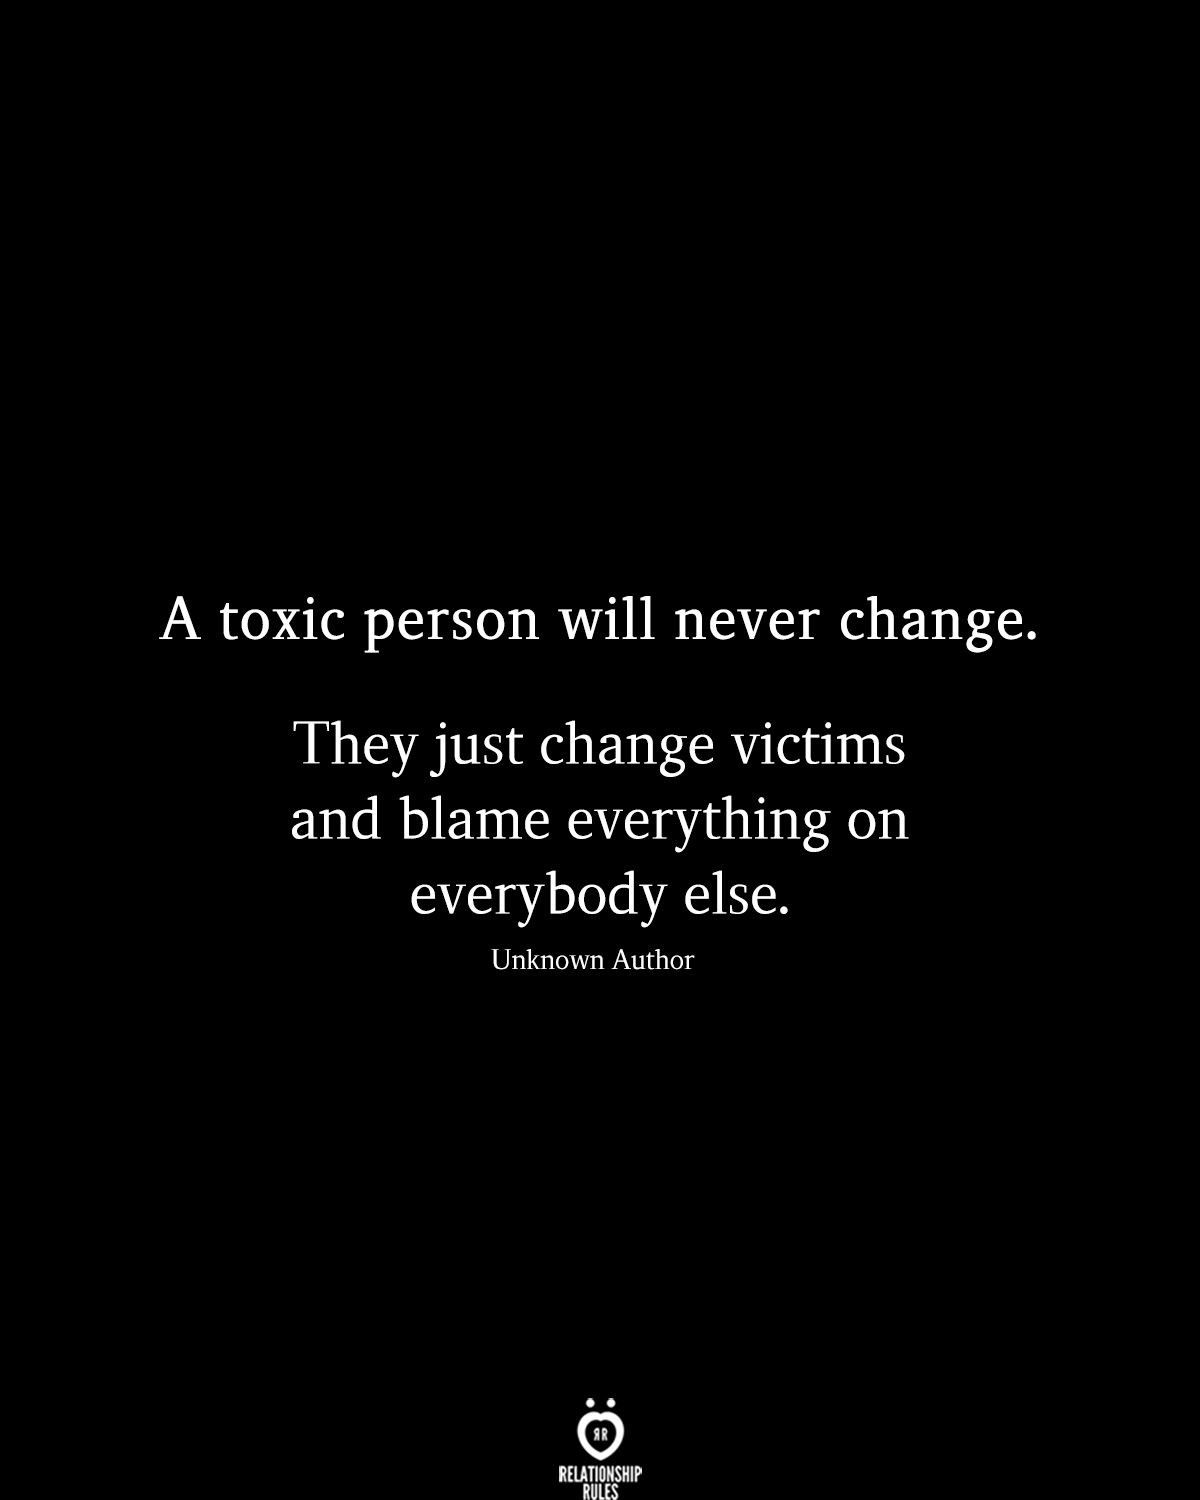 A Toxic Person Will Never Change